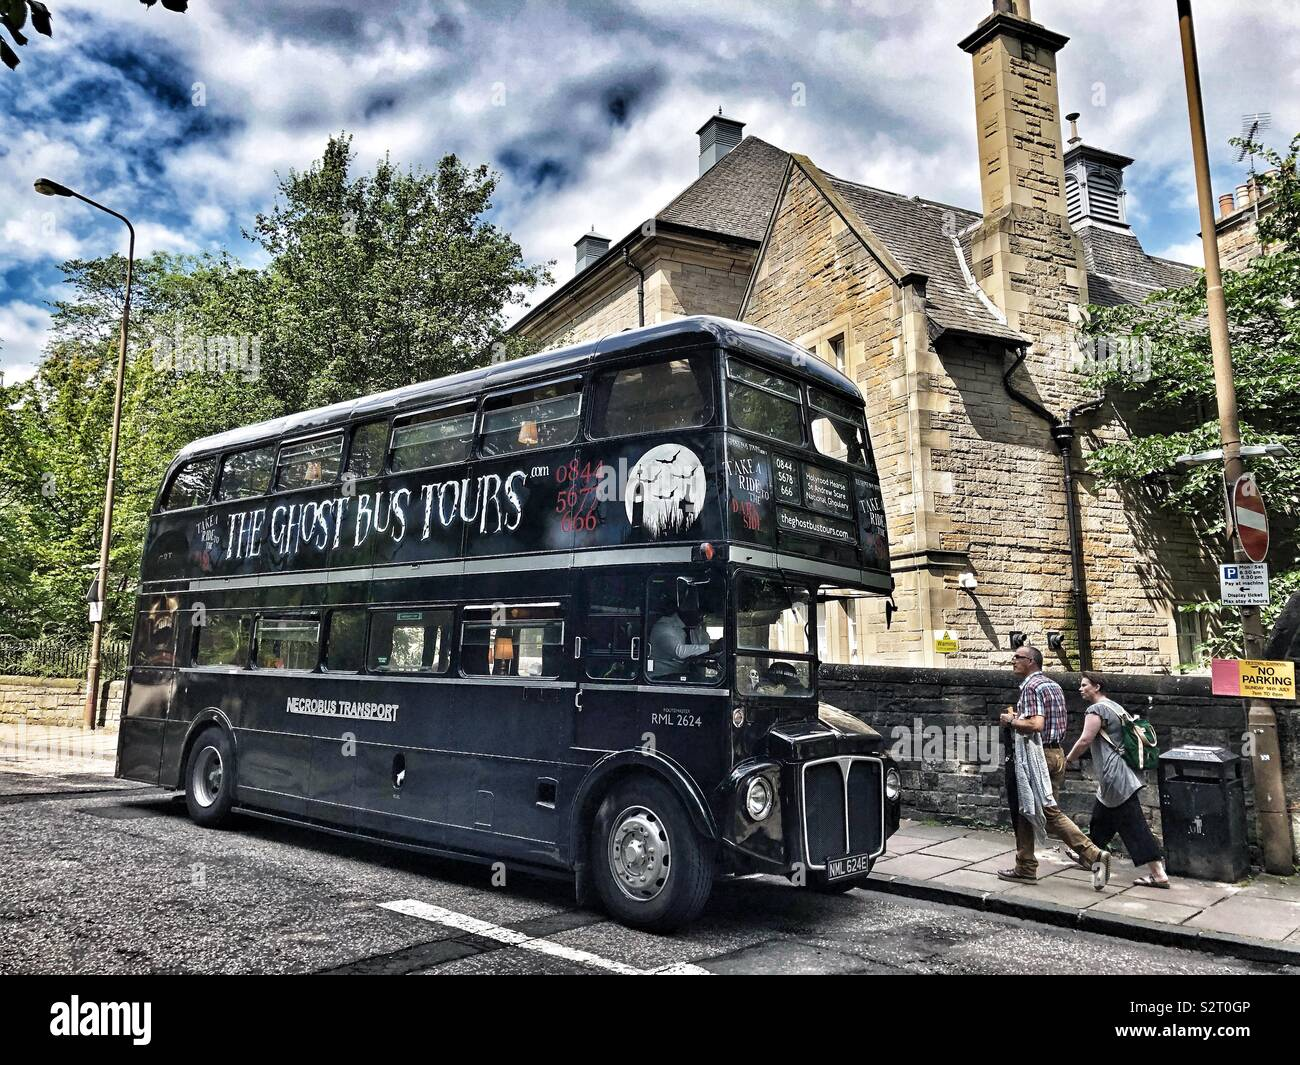 Ghost bus tours Stock Photo